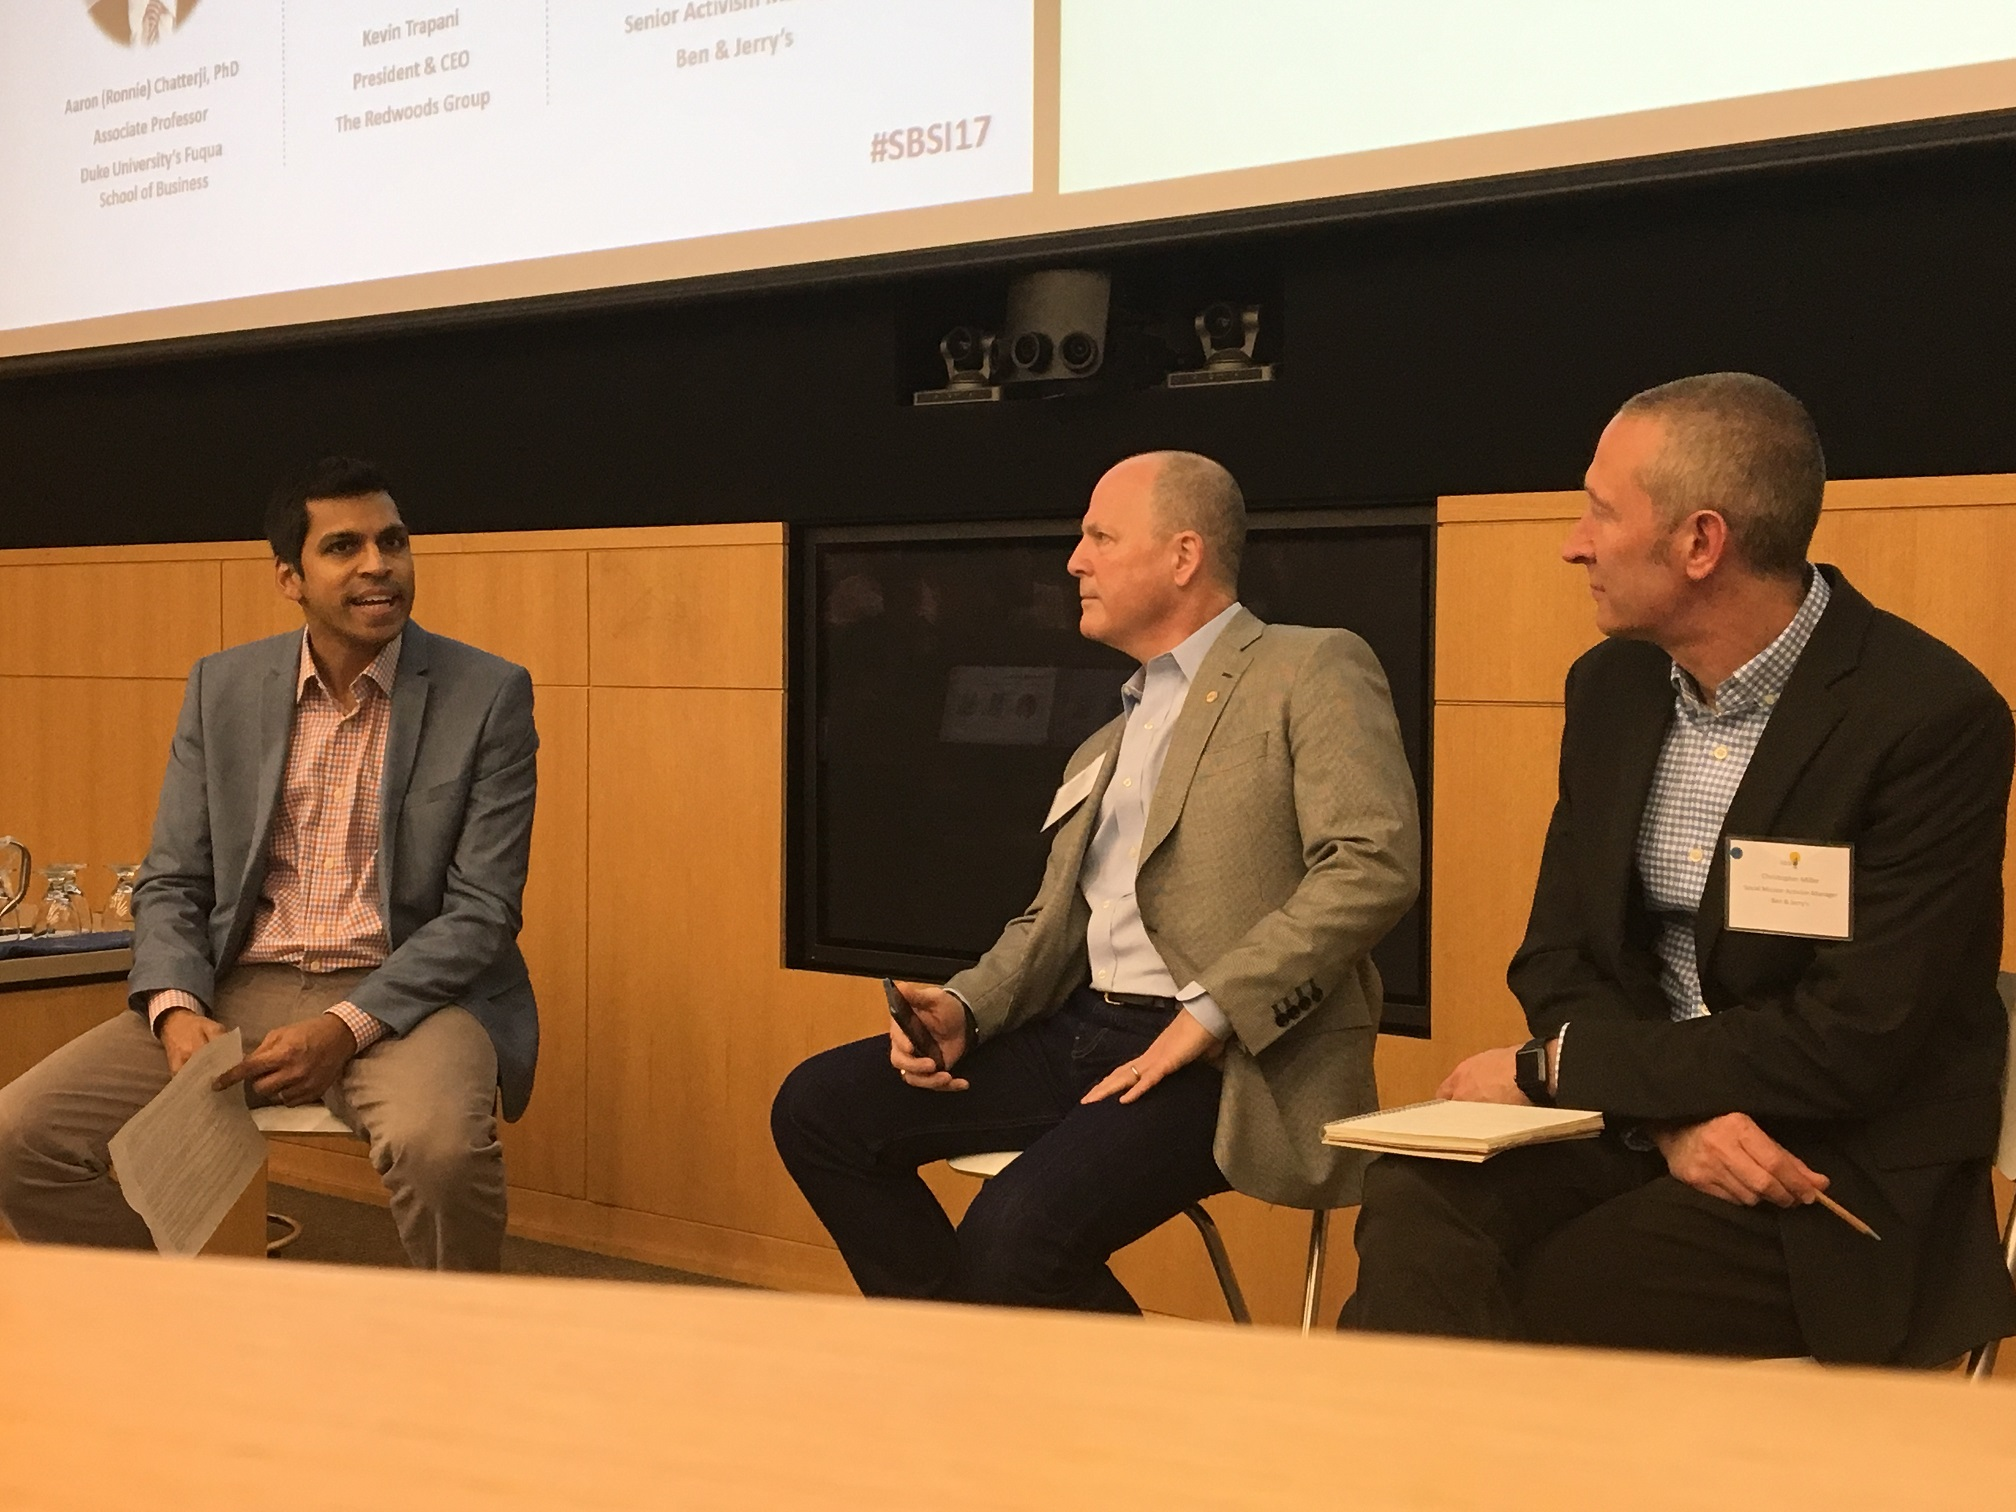 Professor Aaron Chatterji talks CEO activism with Kevin Trapani of the Redwoods Group and Christopher Miller of Ben & Jerry's